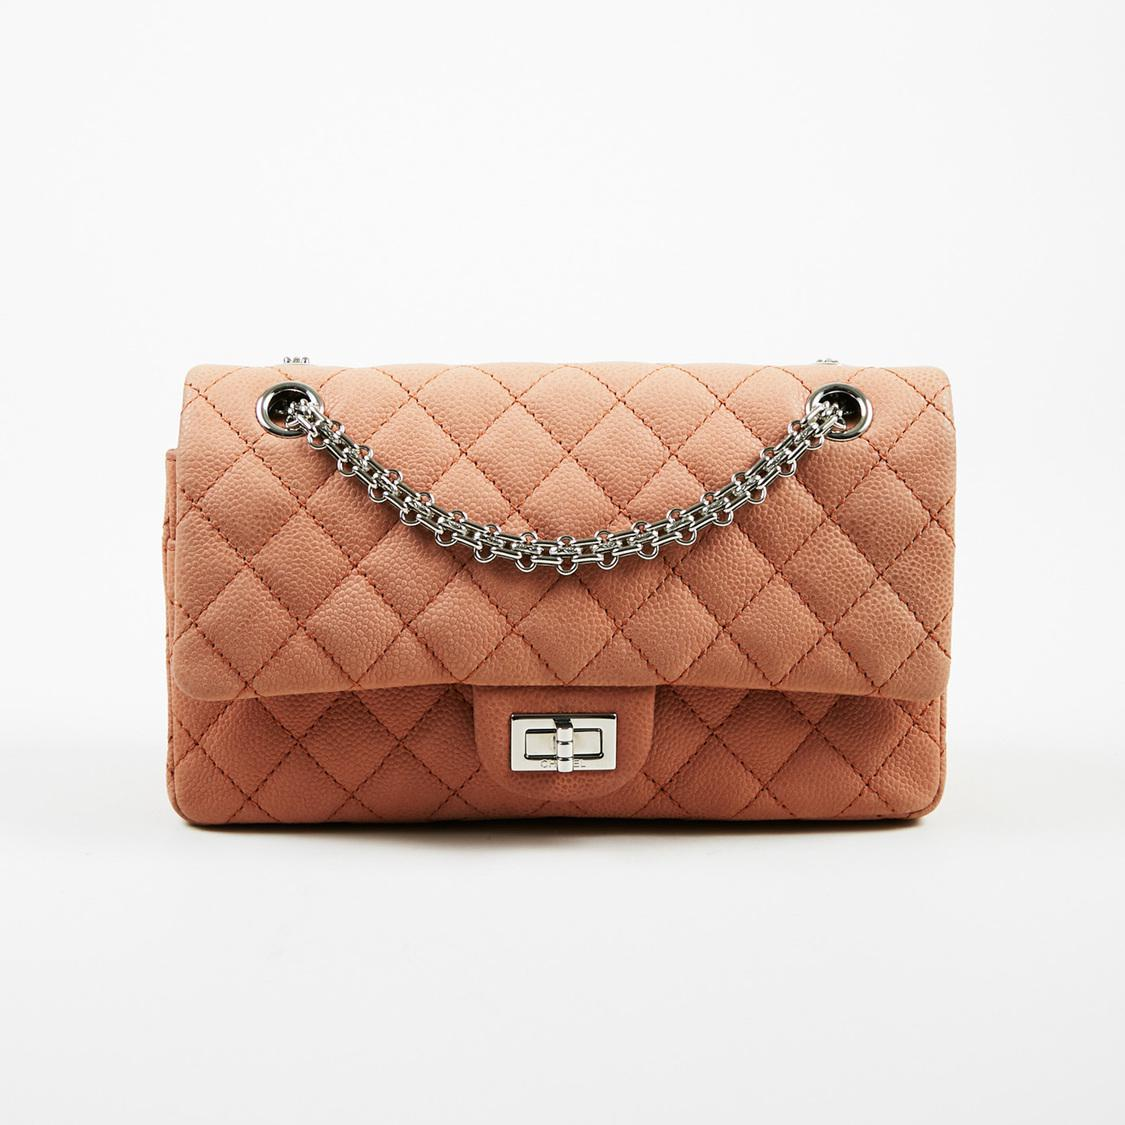 eb68c86c0eedc Chanel 2.55 Reissue Classic 227 Double Flap Caviar Leather Bag in ...